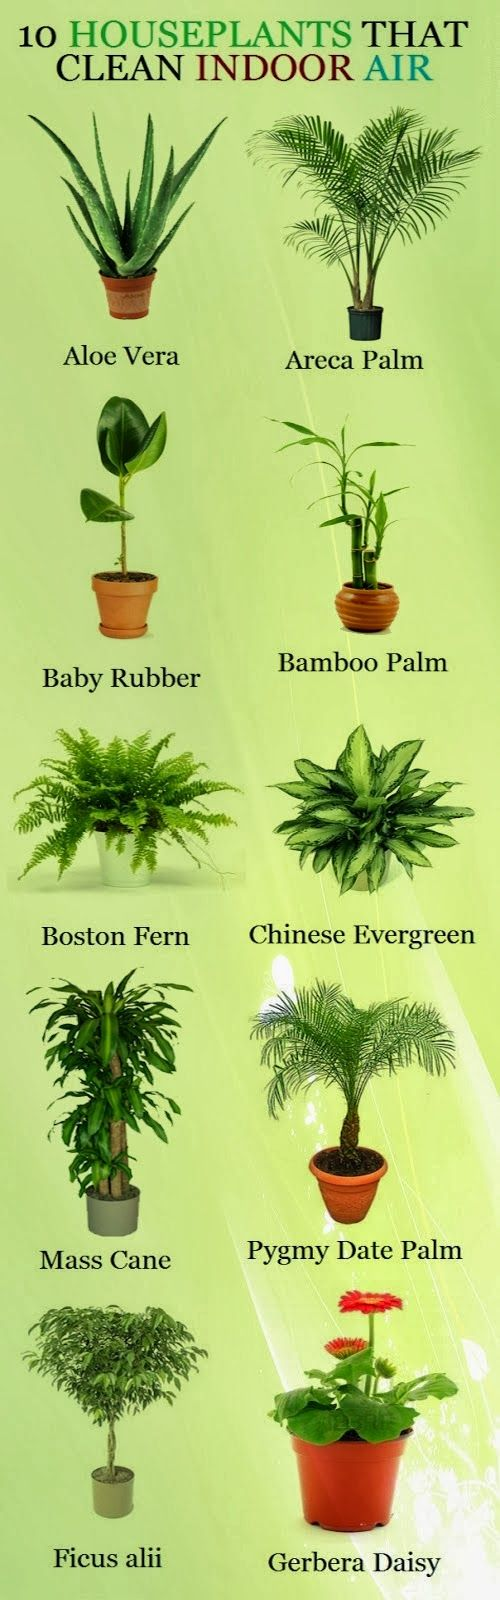 Ten Houseplants That Clean Indoor Air Alternative Gardning